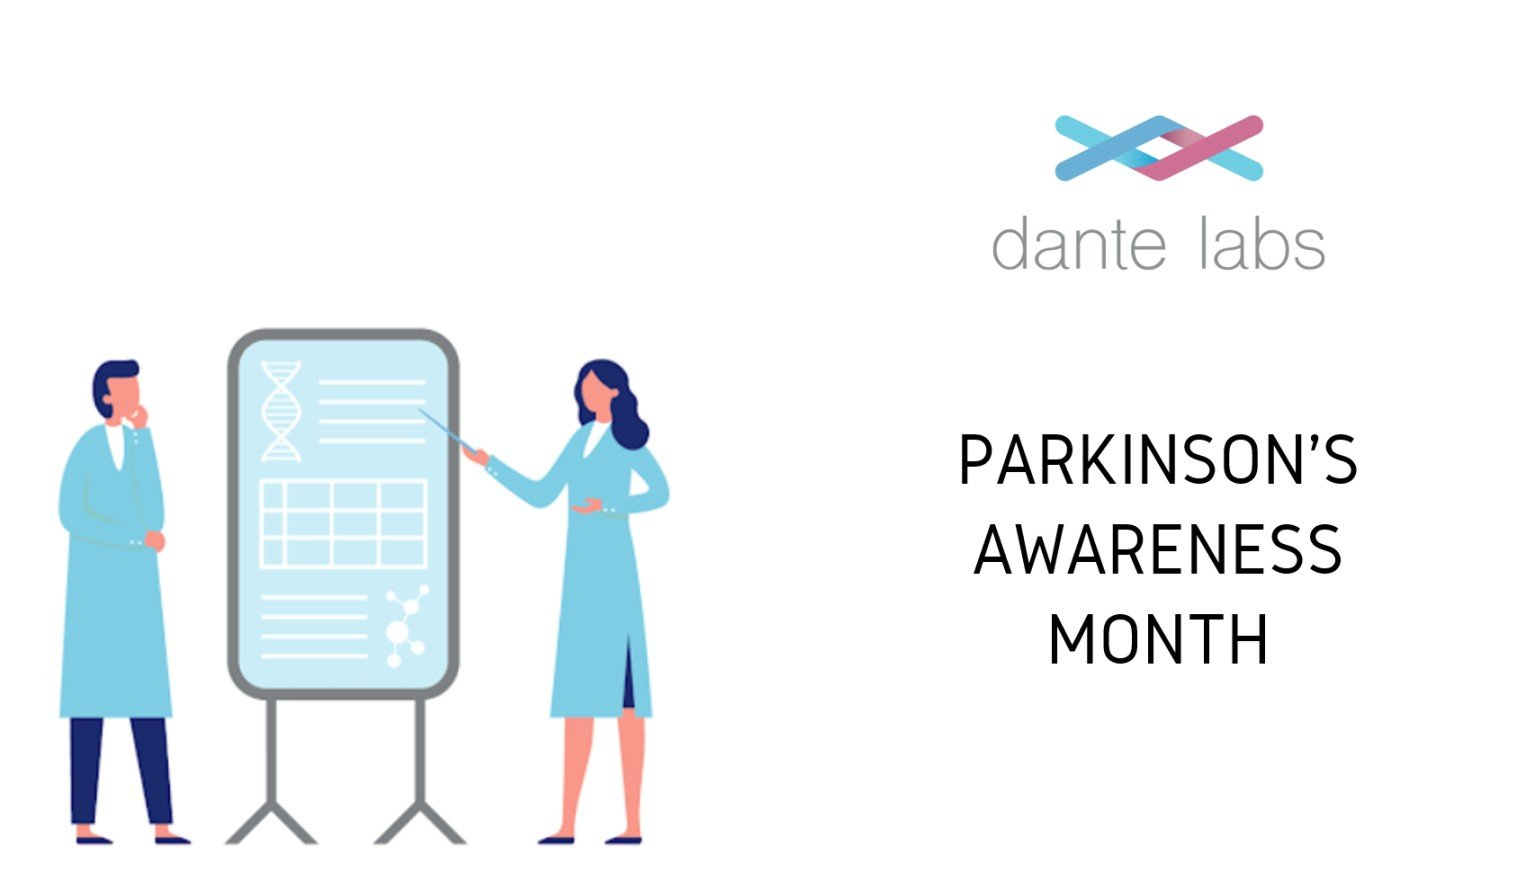 Dante Labs for Parkinson's Awareness Month